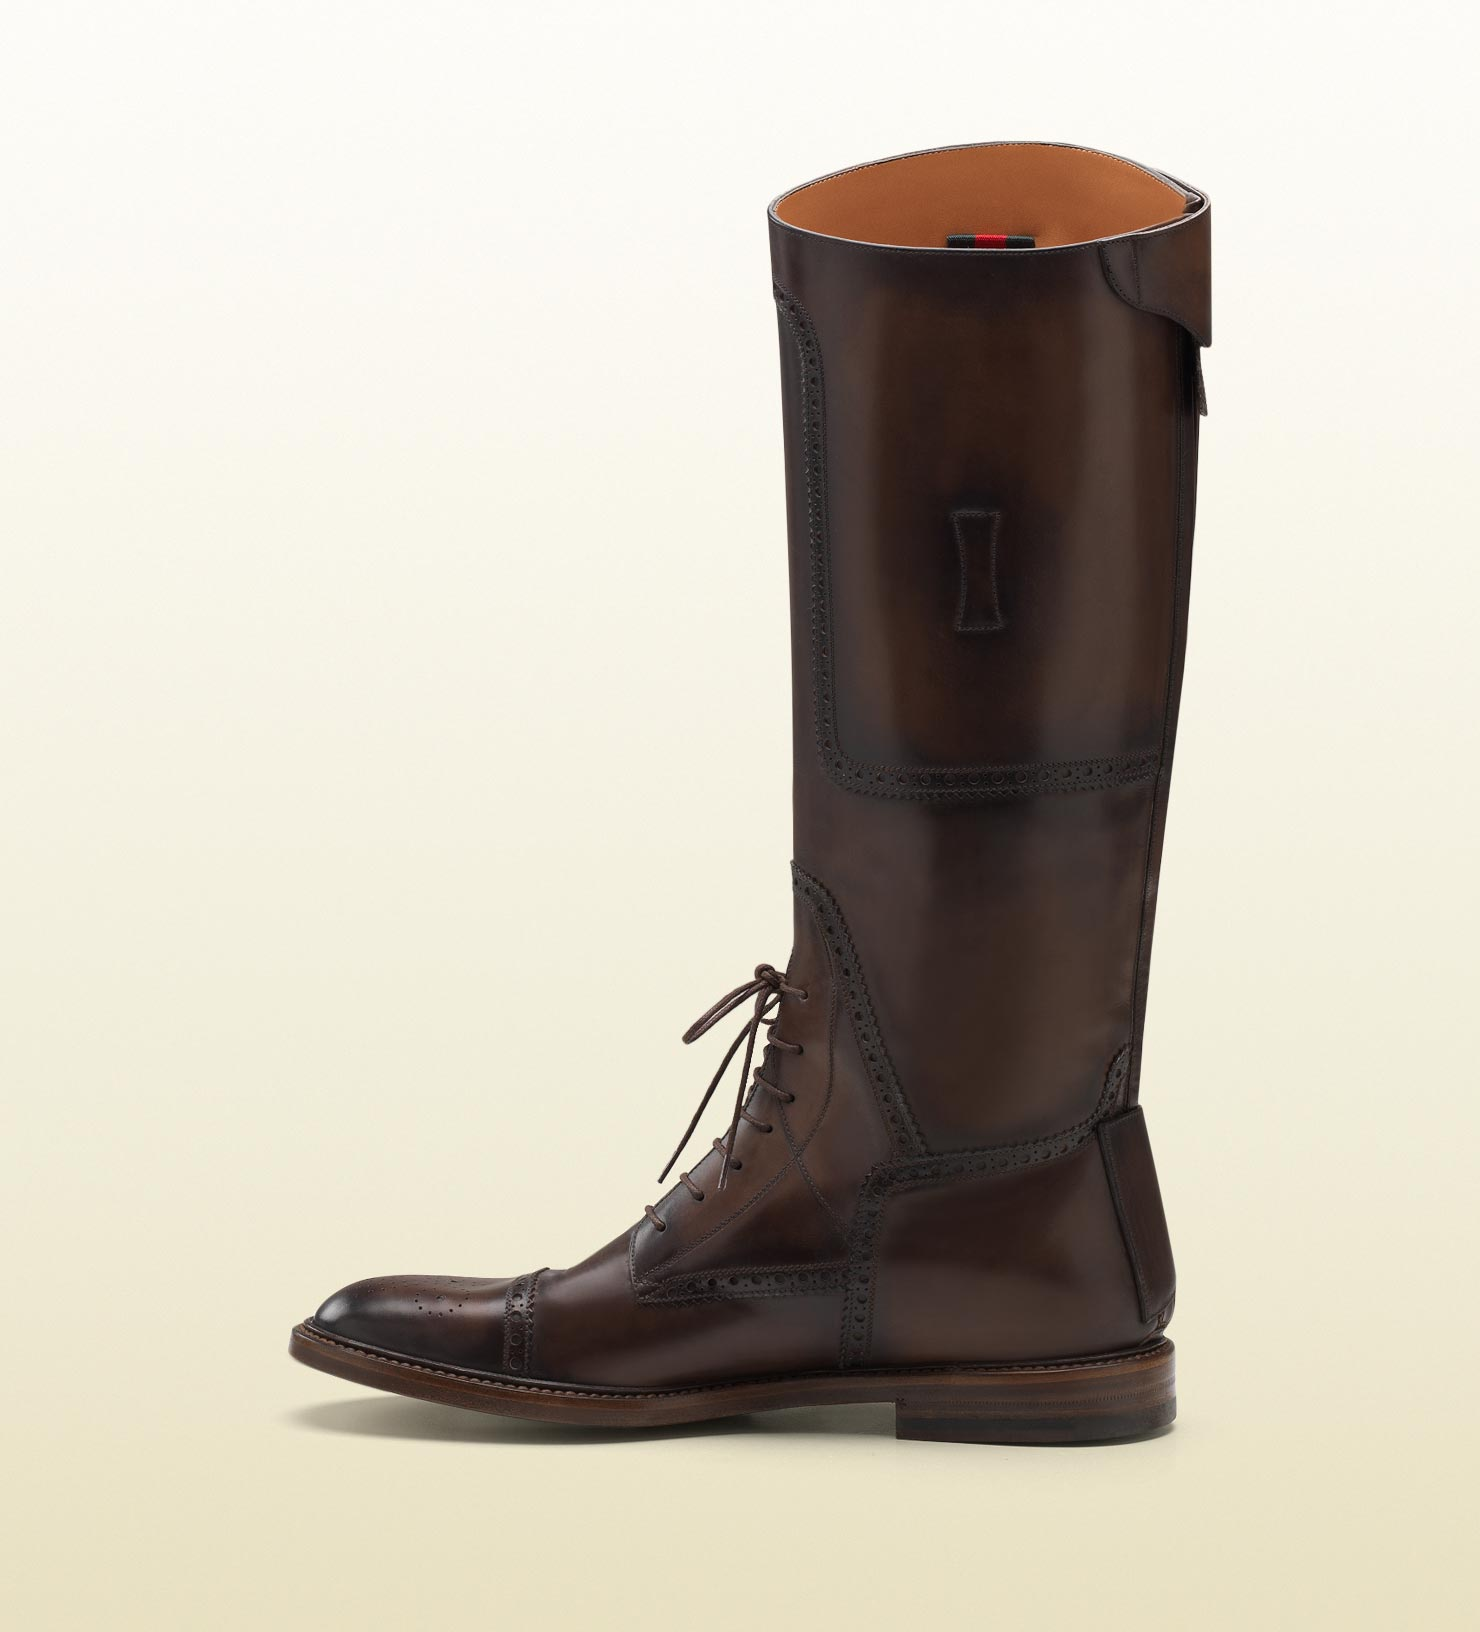 ccb5d3eca60 Lyst - Gucci Redoute Brown Perforated Leather Tall Boot in Brown for Men